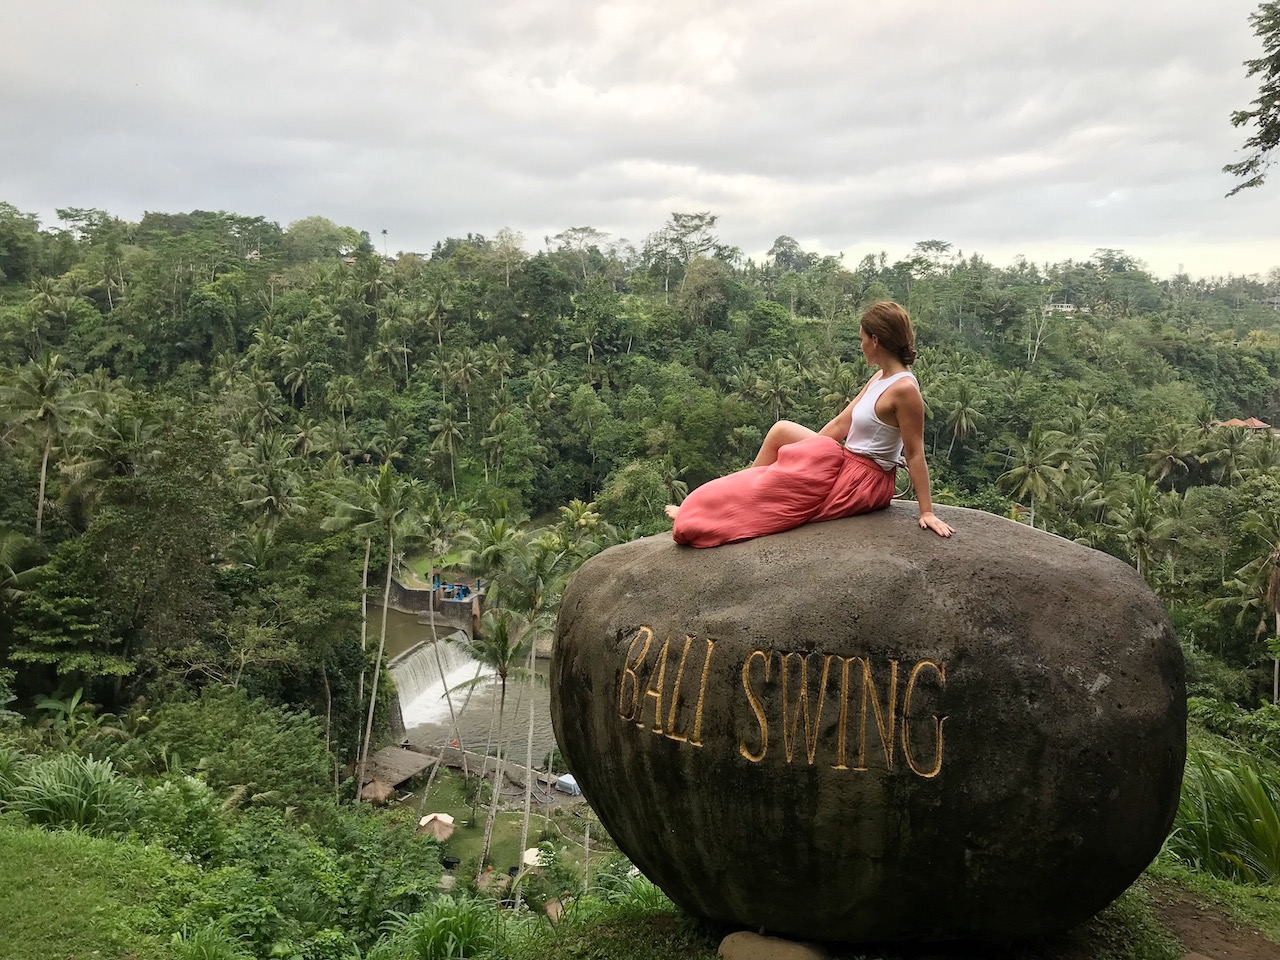 Bali Swing Ubud Travel Luxury Travel Schaukeln Reisen Annaway